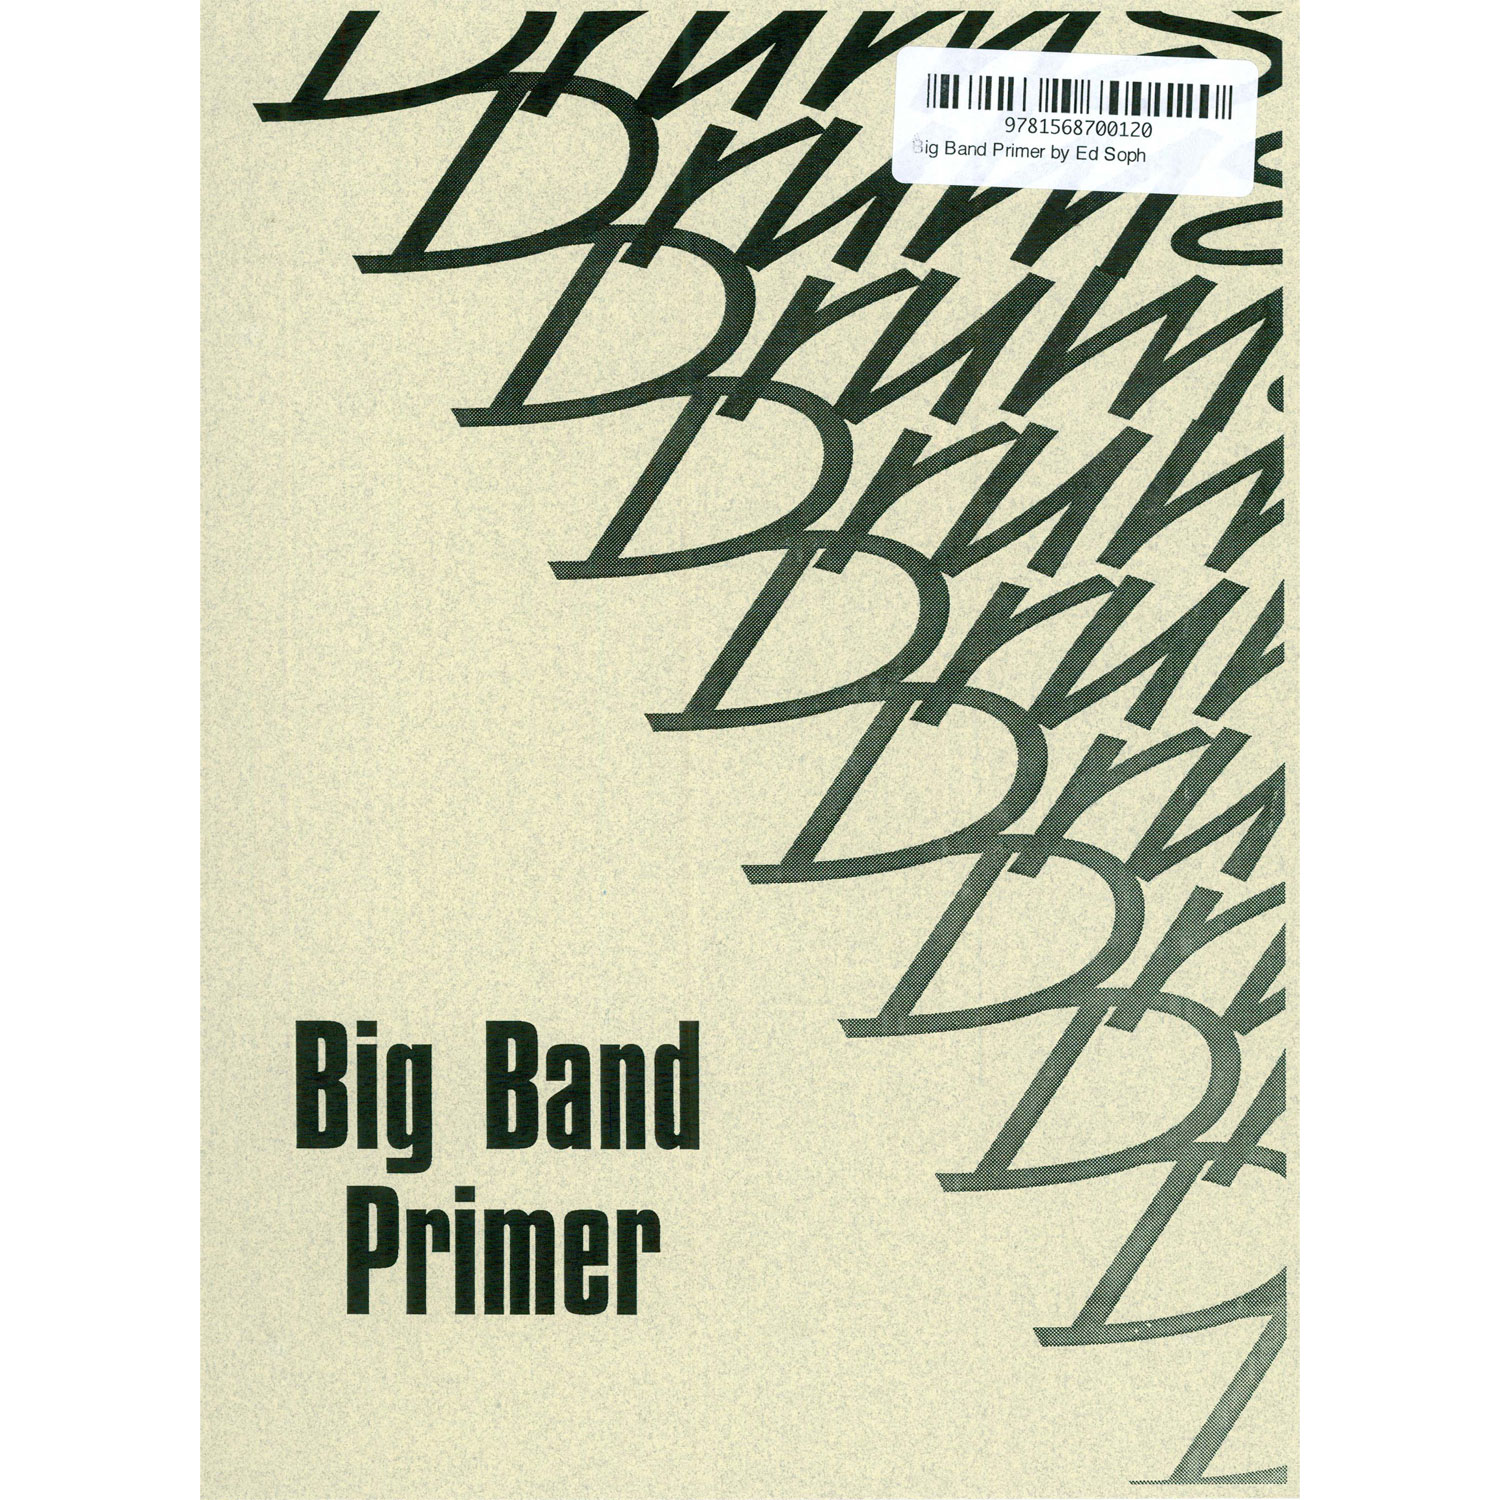 Big Band Primer by Ed Soph